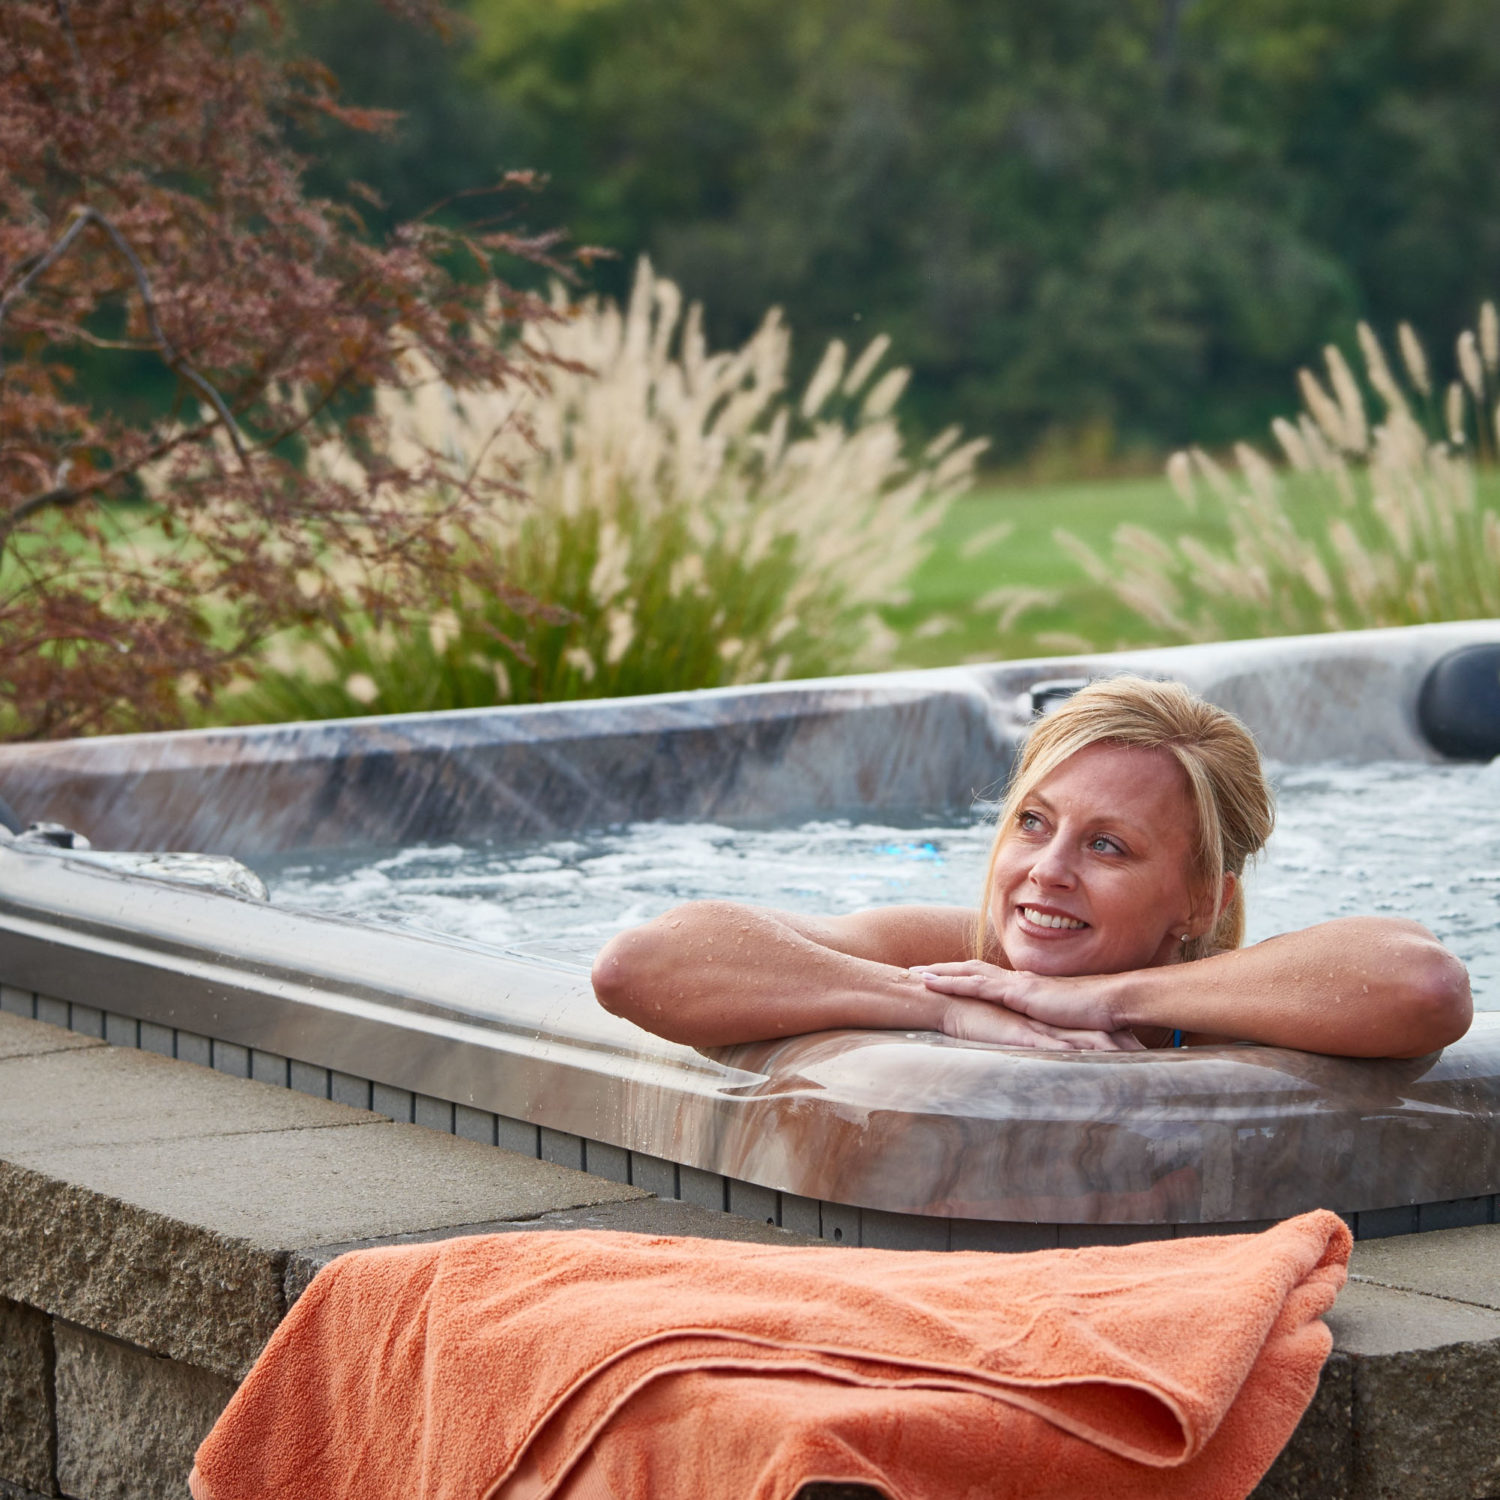 A woman relaxing and smiling in an Aspen Spas Relax hot tub